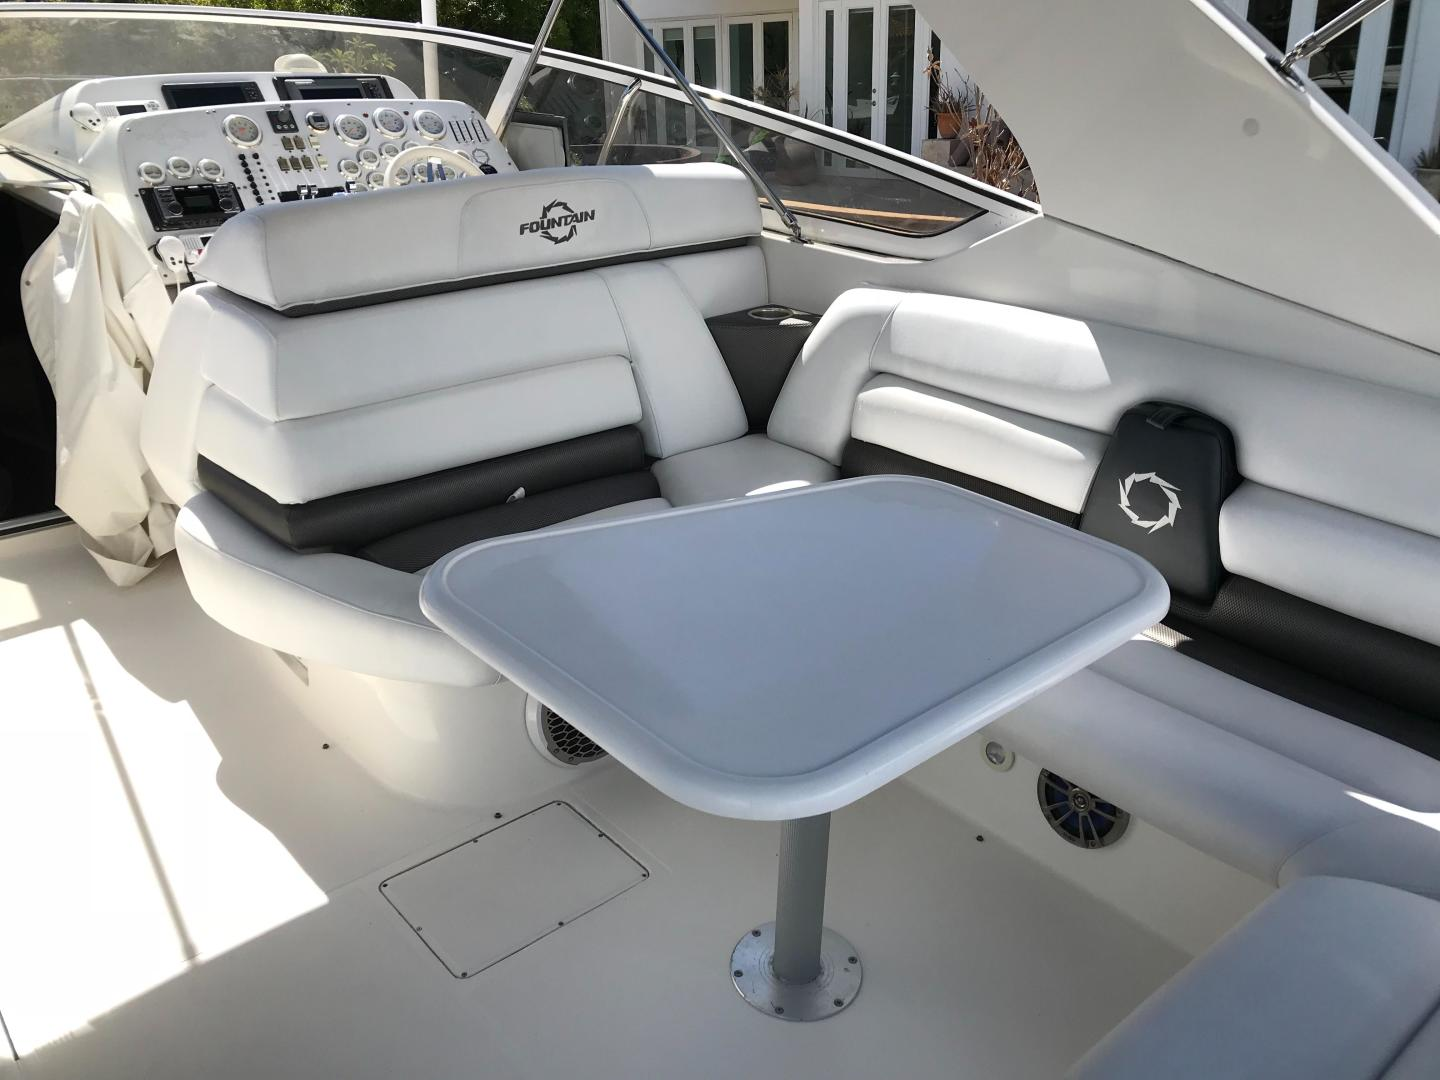 Fountain-48 Express Cruiser 2005-FAST LOLO Fort Lauderdale-Florida-United States-1050647 | Thumbnail